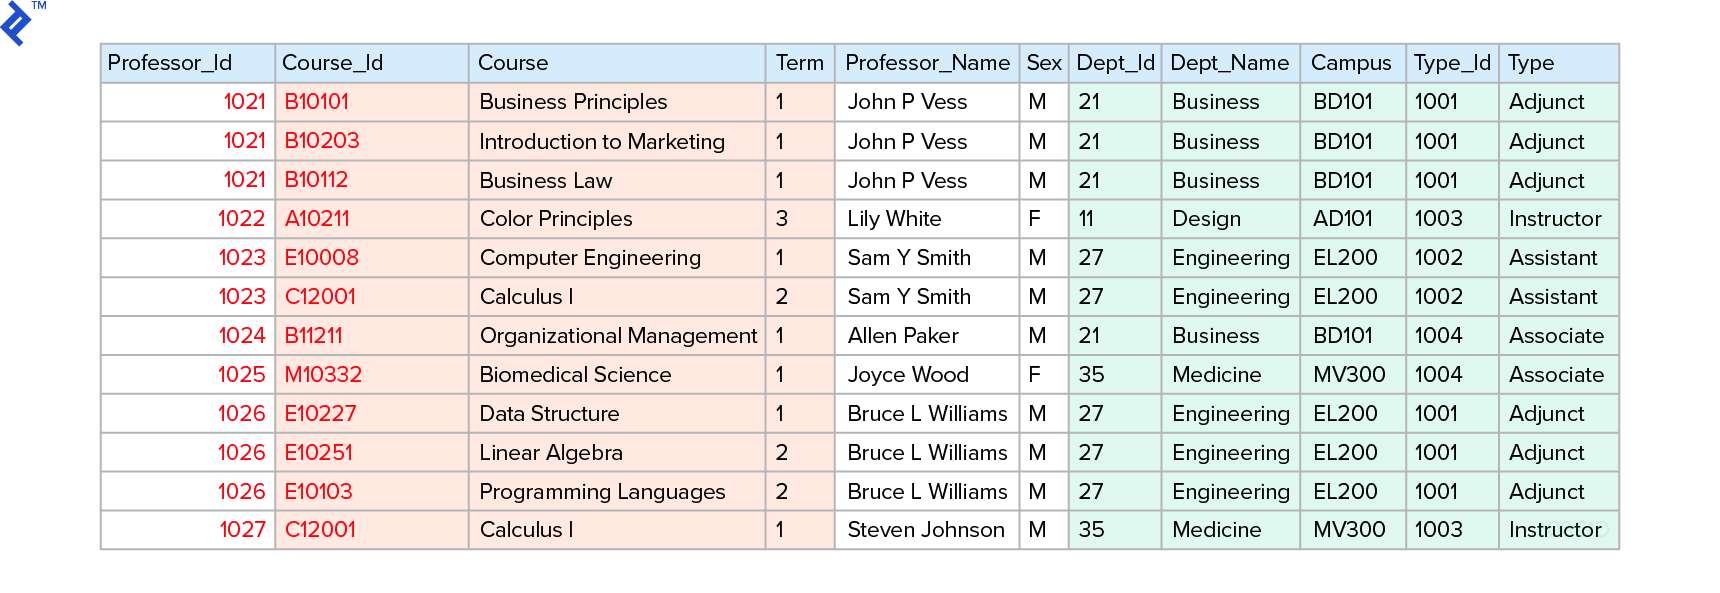 A 1NF model with columns for professor ID, name, sex, type ID/name, and department;  course ID and title; term, and campus.